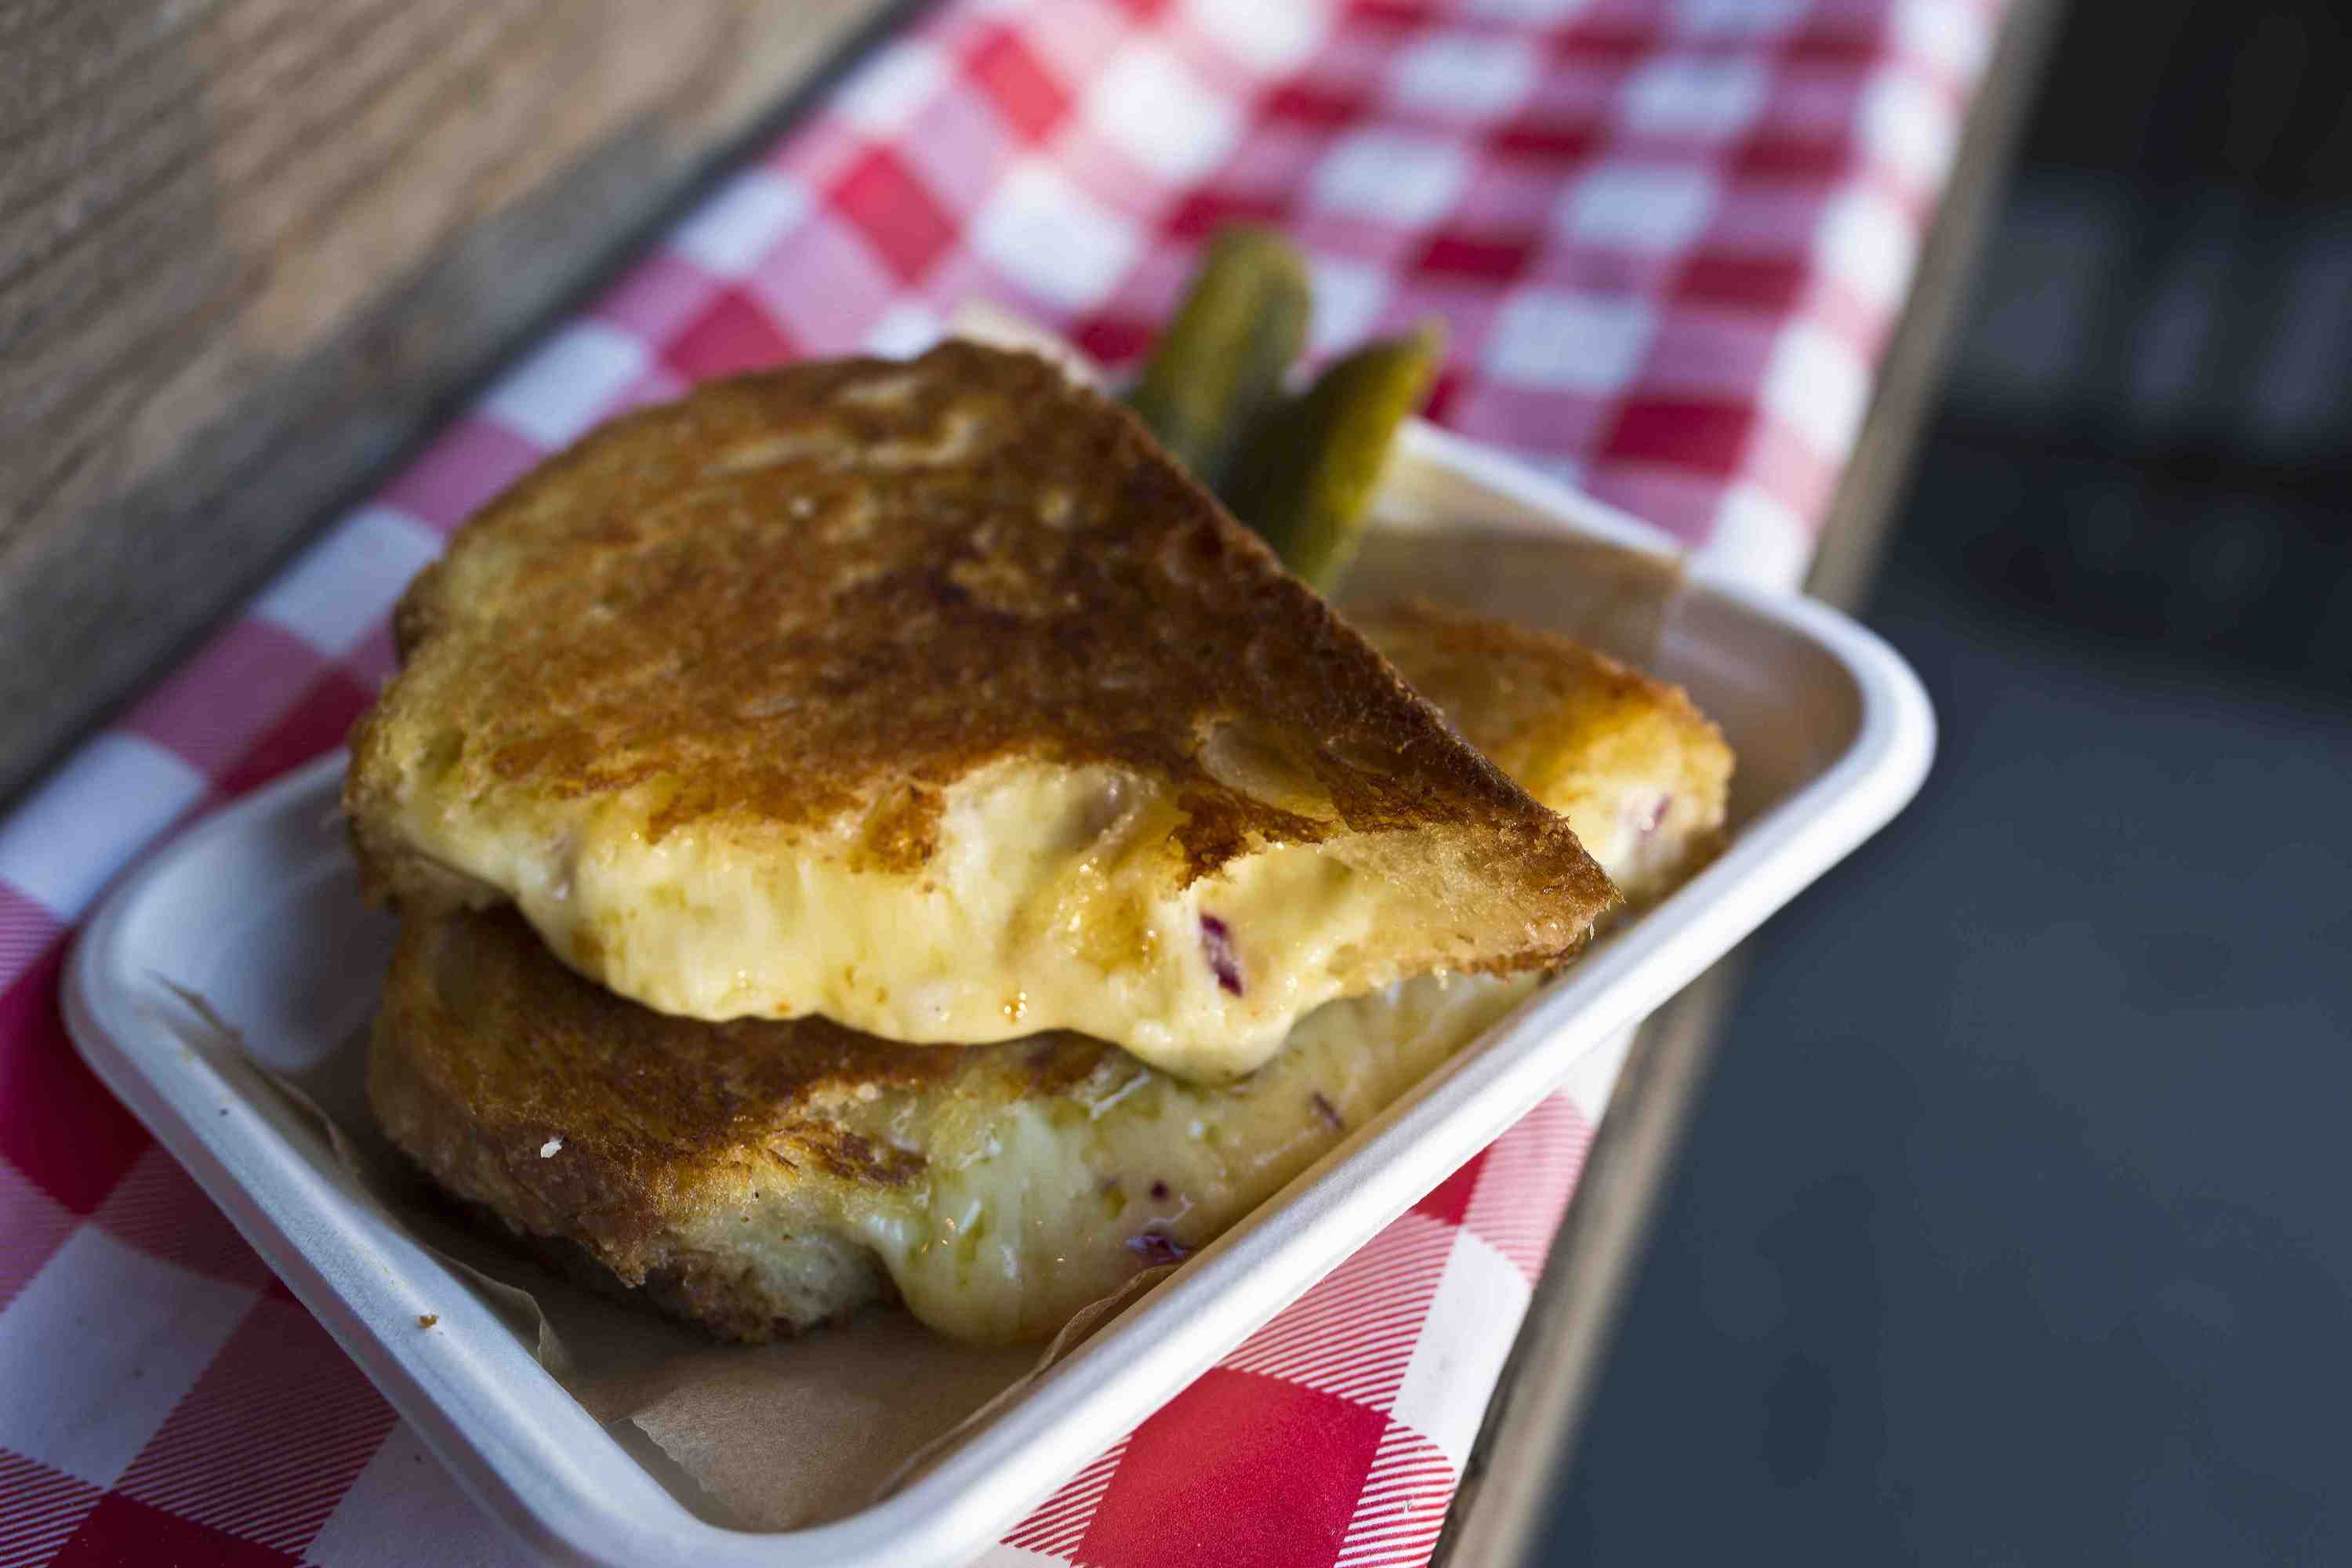 Grilled cheese london